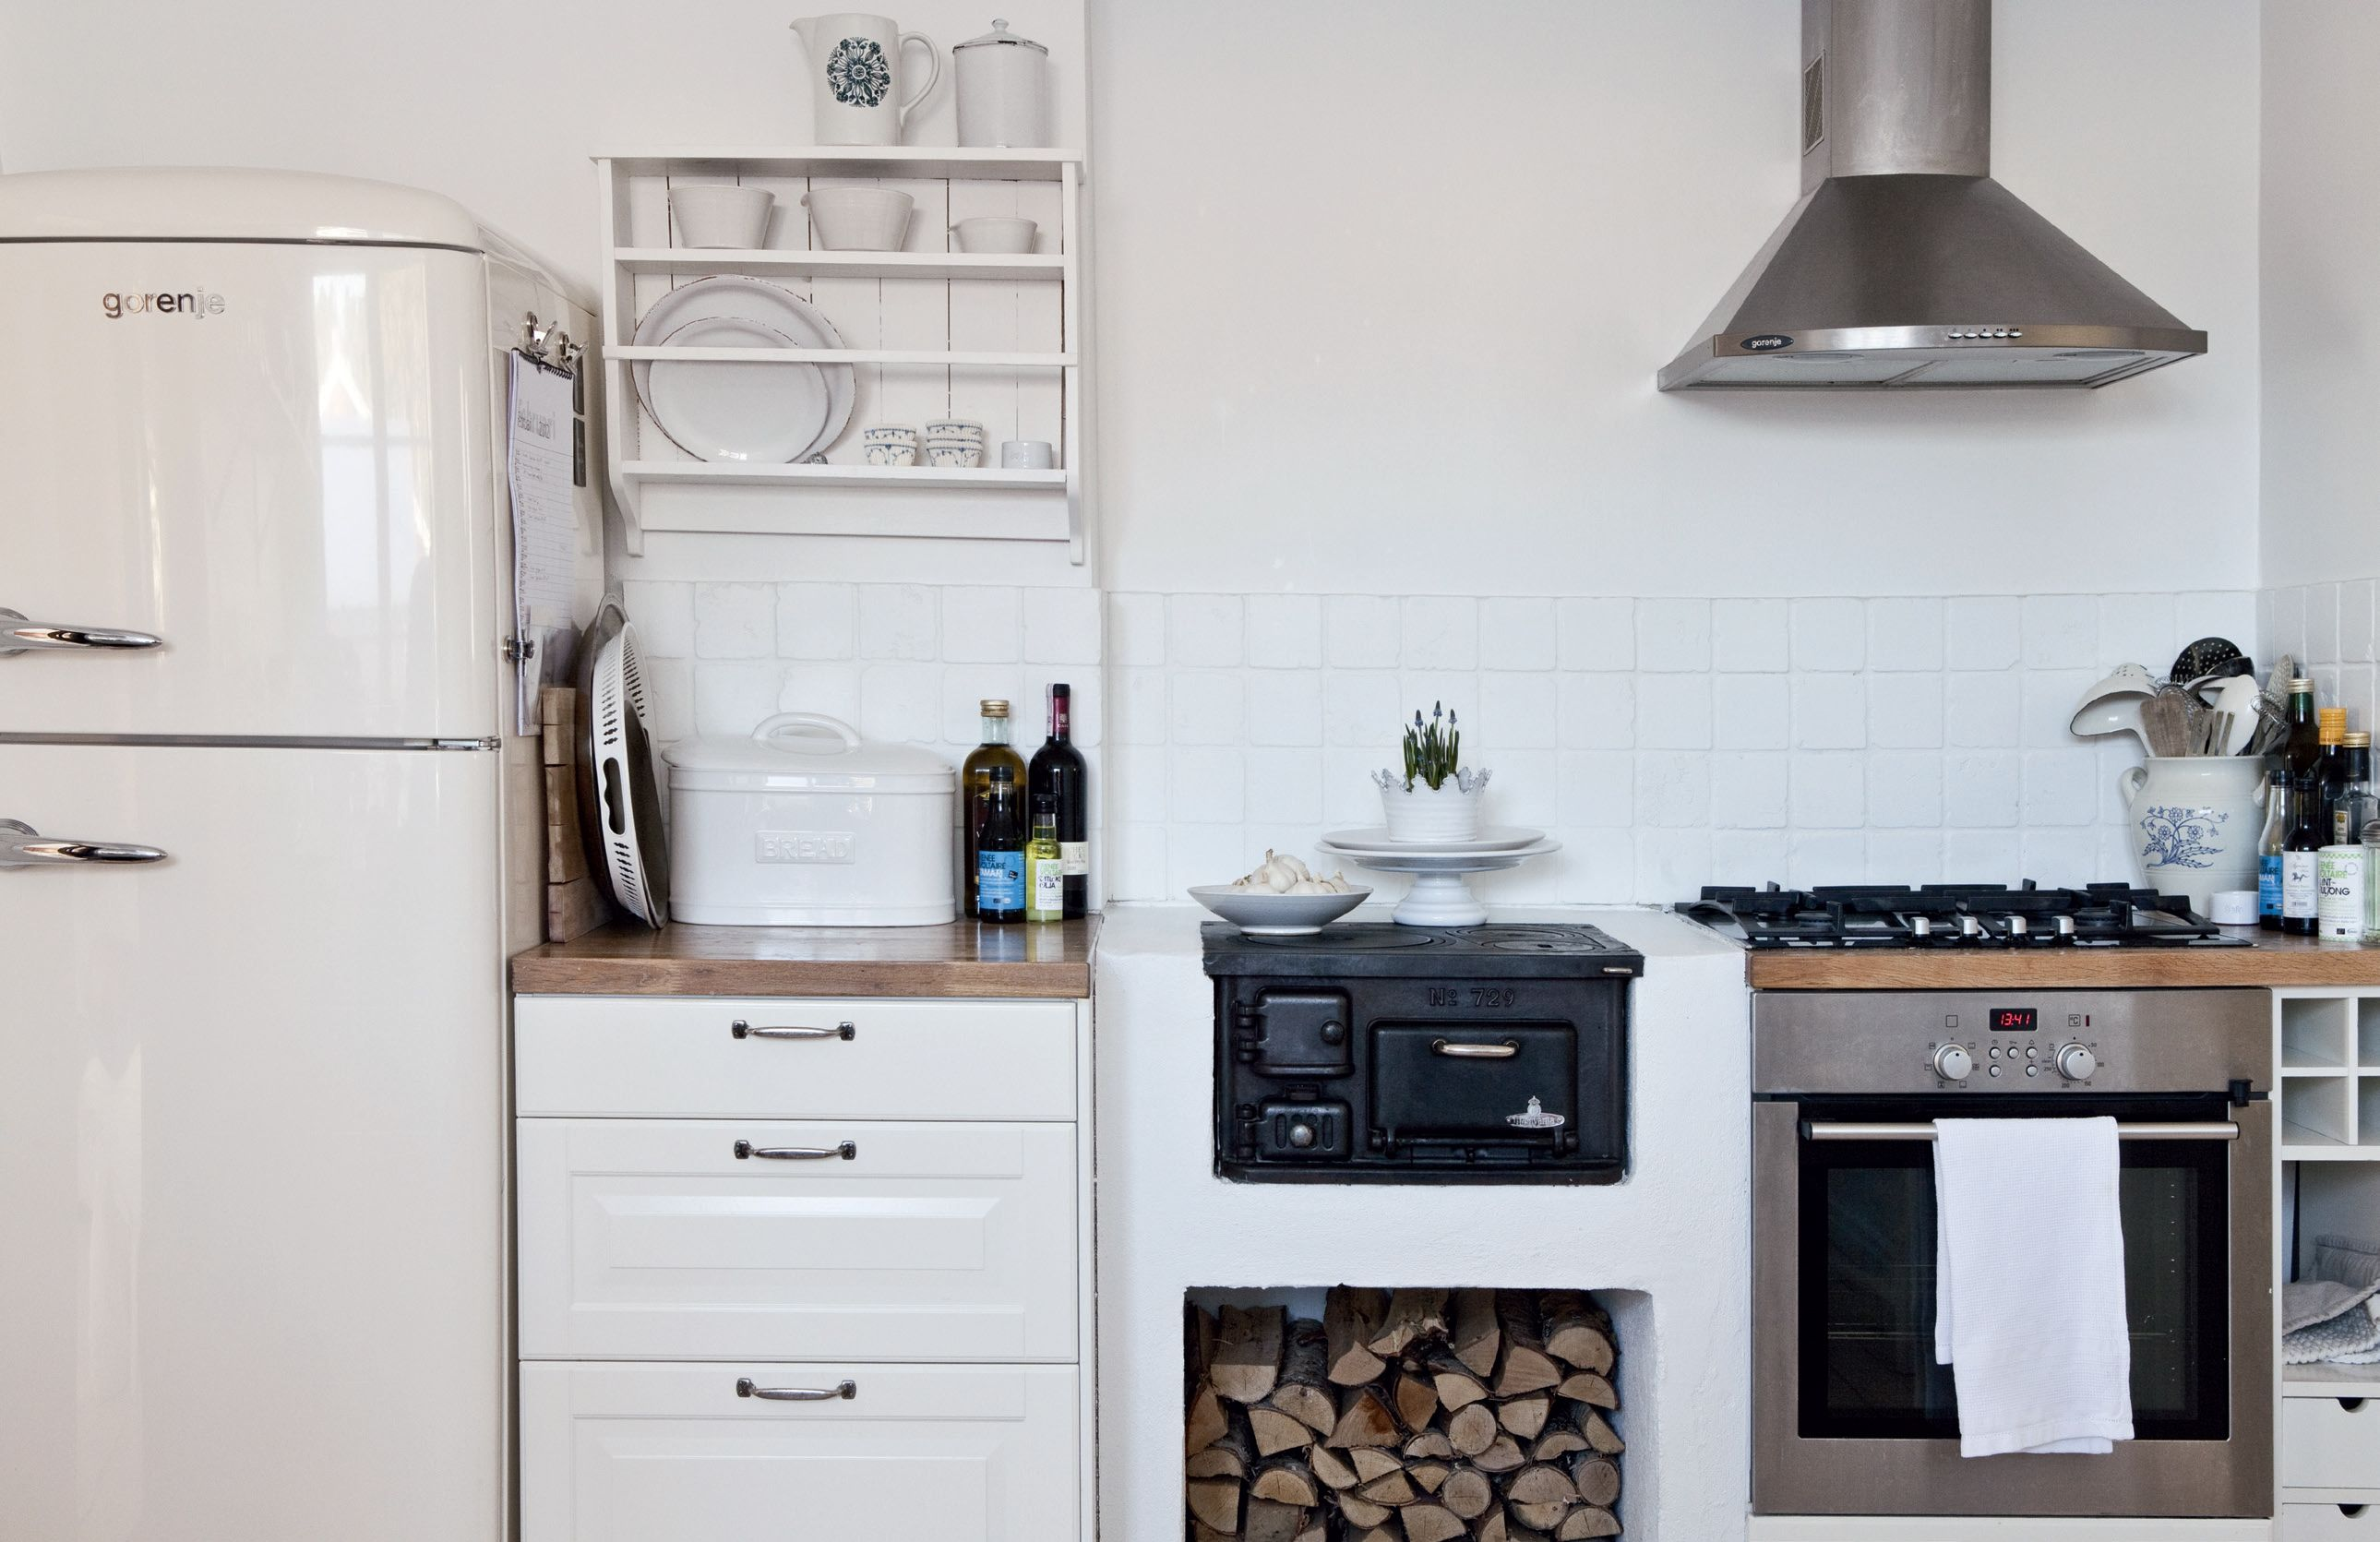 Scandinavian Kitchen With Small Wood Burning Stove Scandinavian Kitchen Design Scandinavian Kitchen Kitchen Design Small